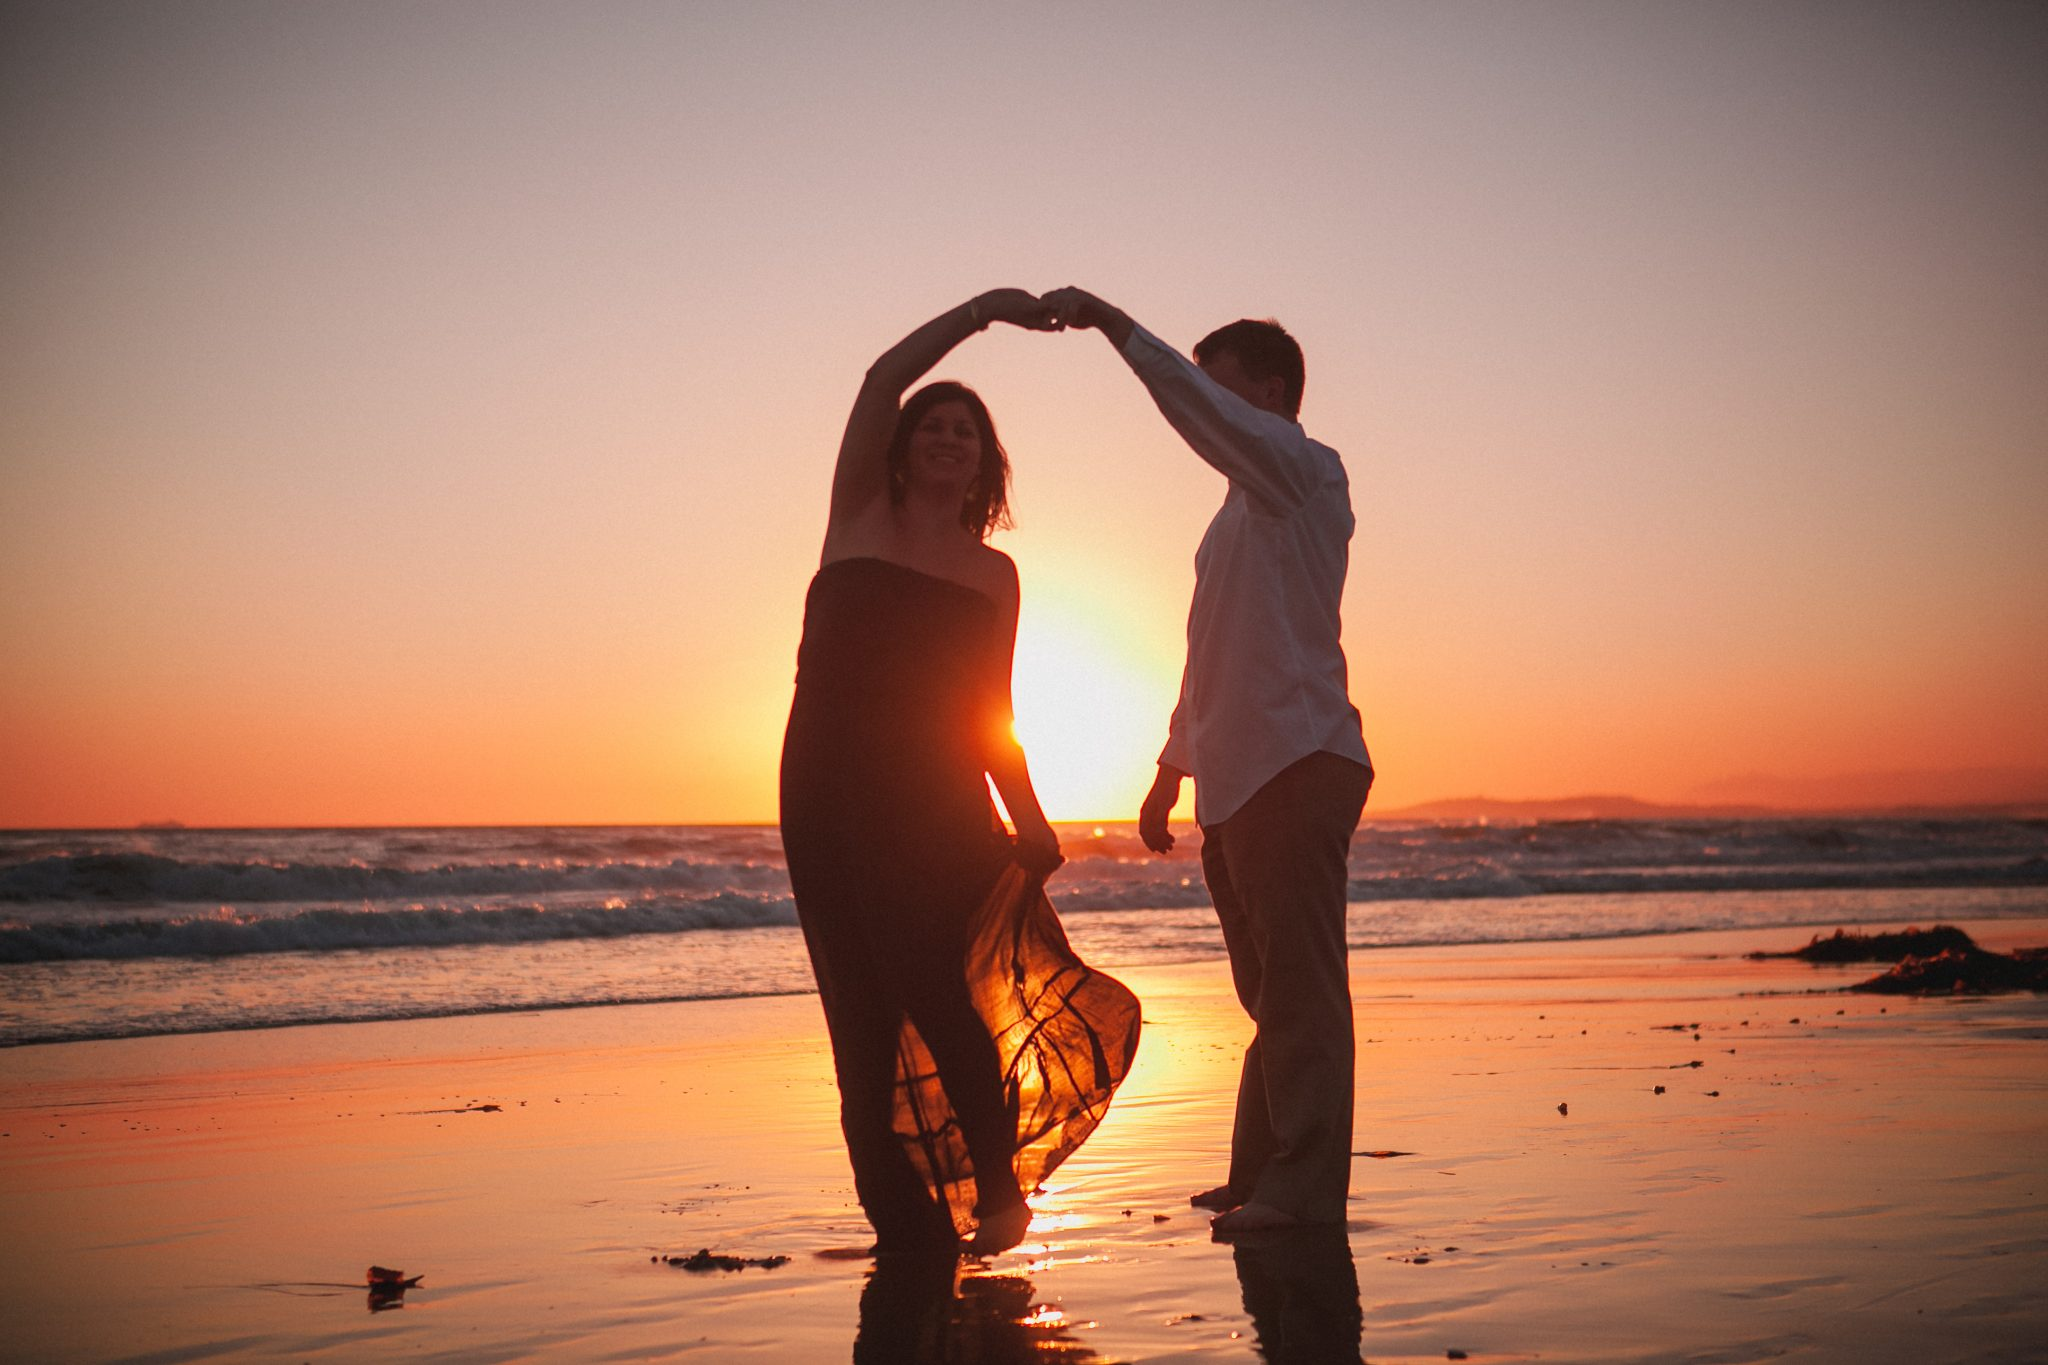 Romantic sunset engagement photo at the beach